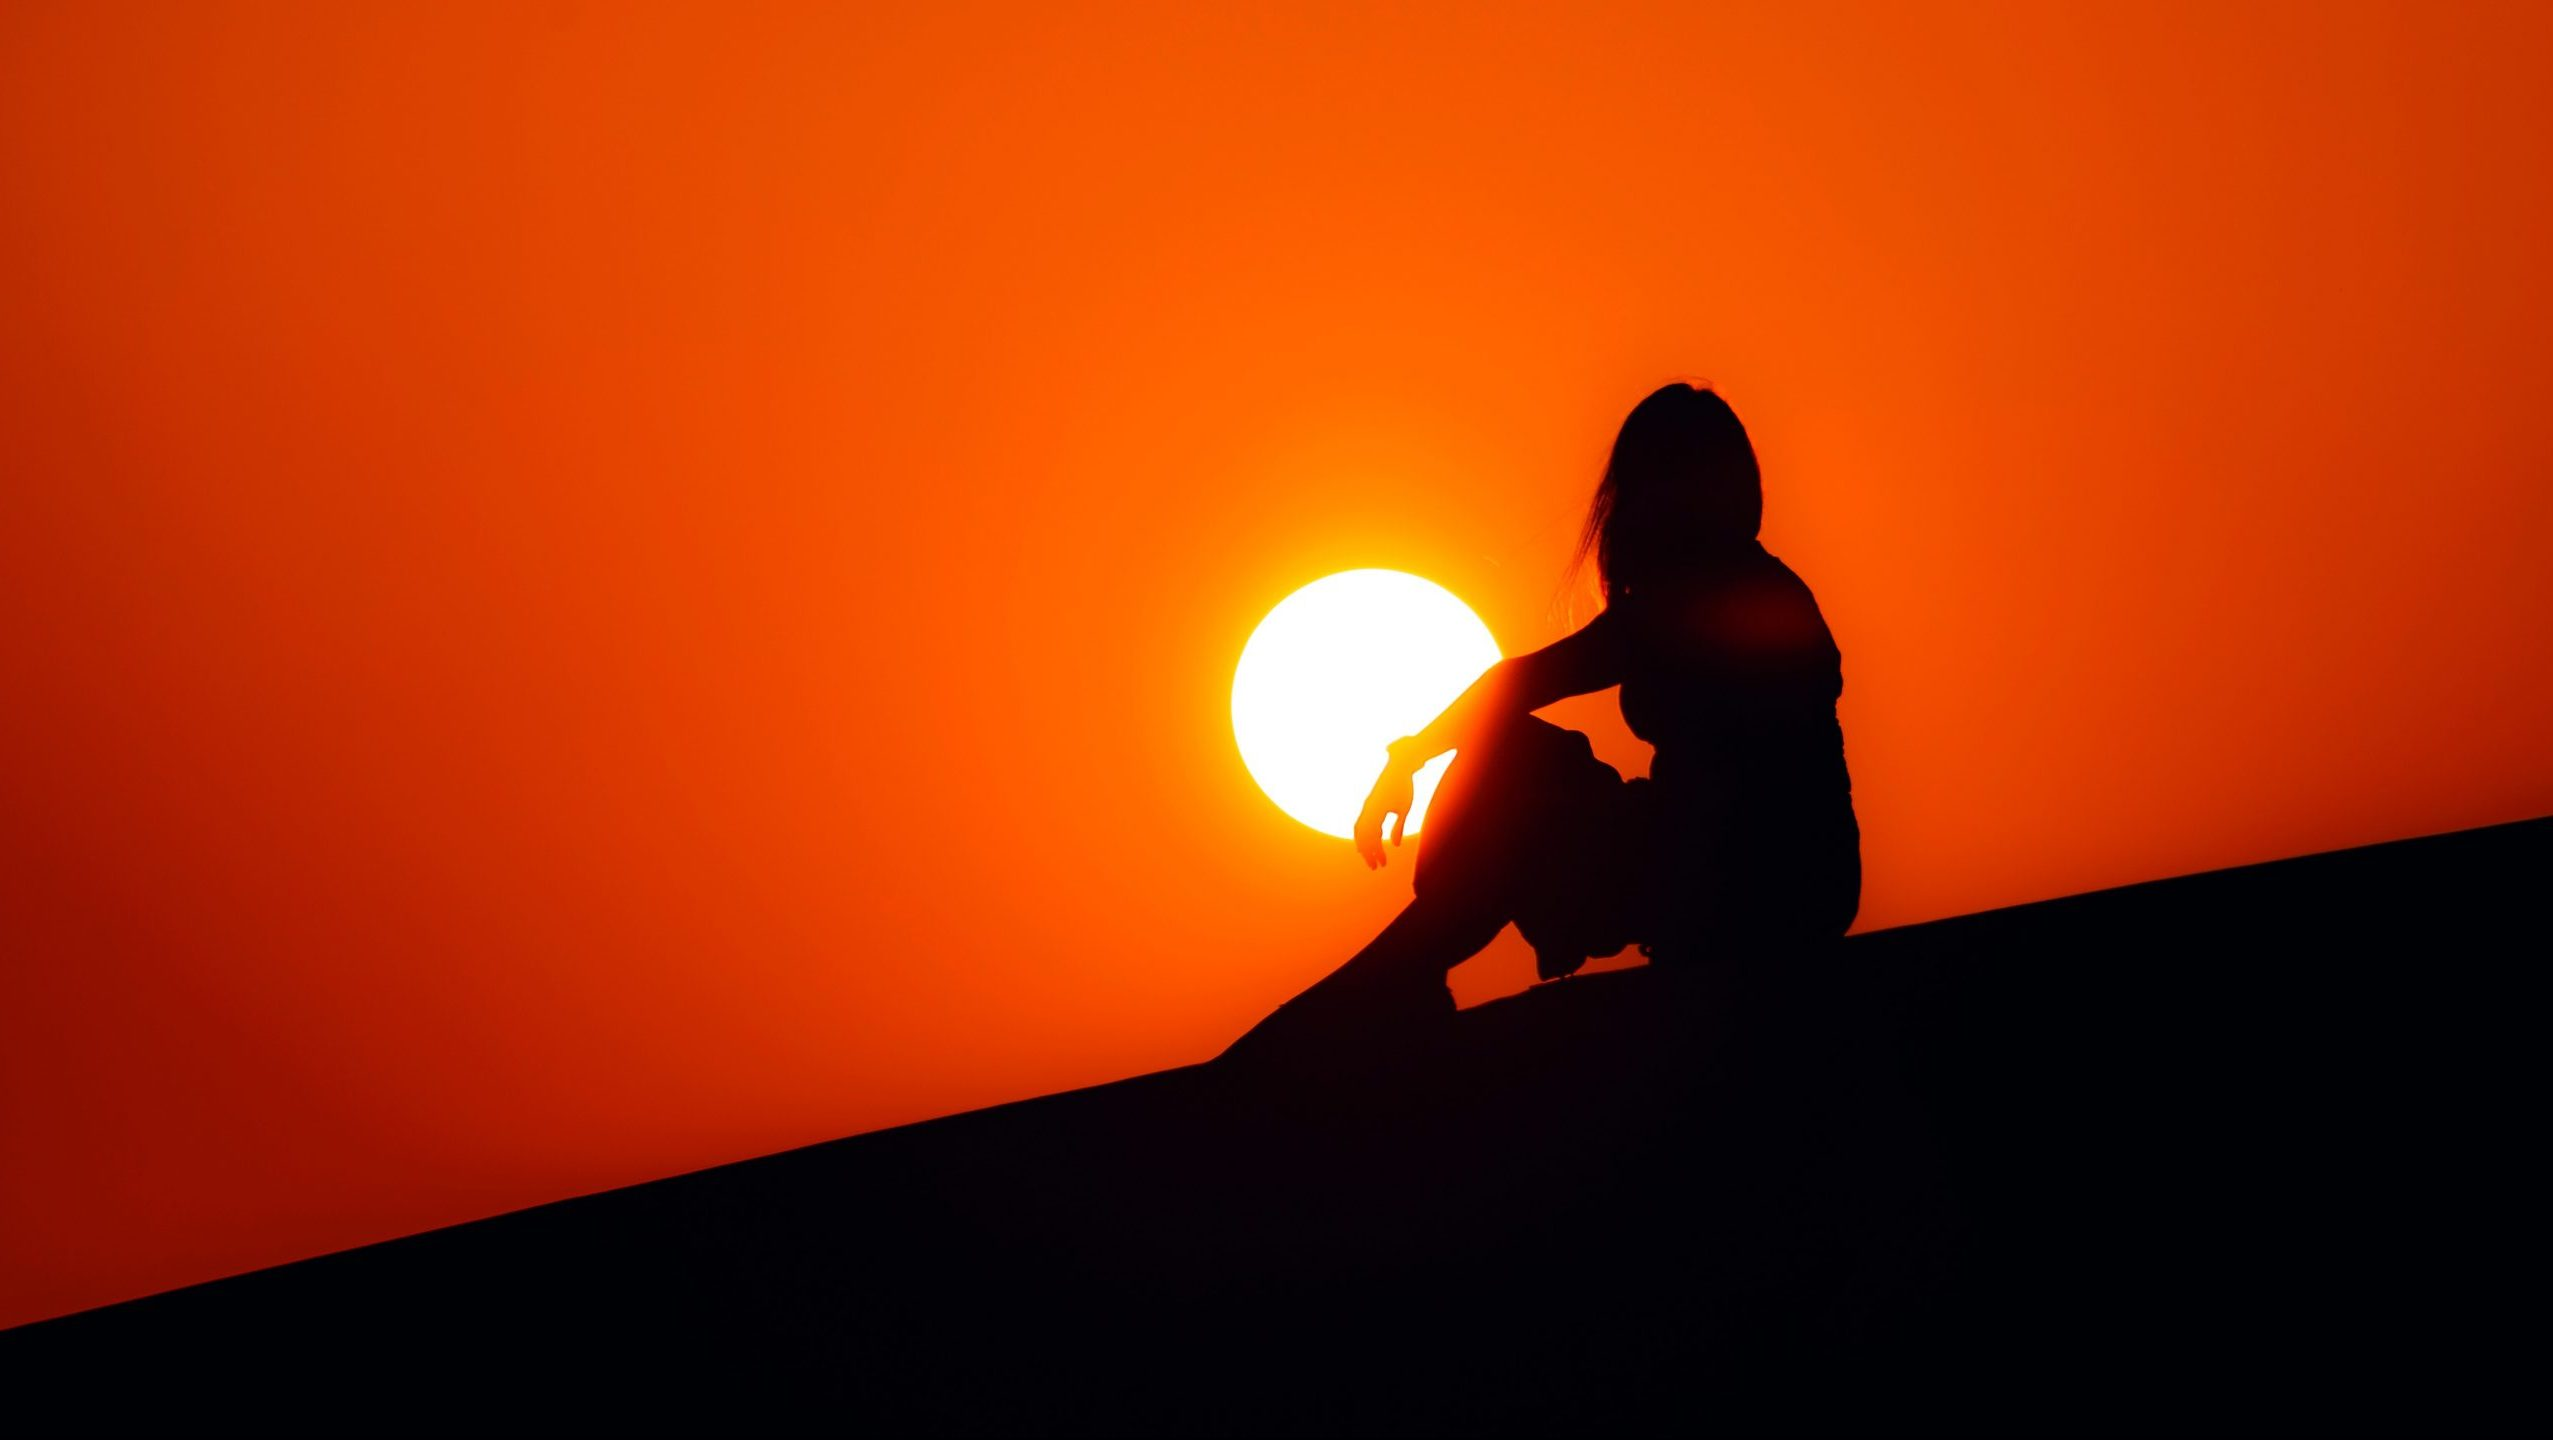 Silhouette of woman sitting on ground in front of the sun